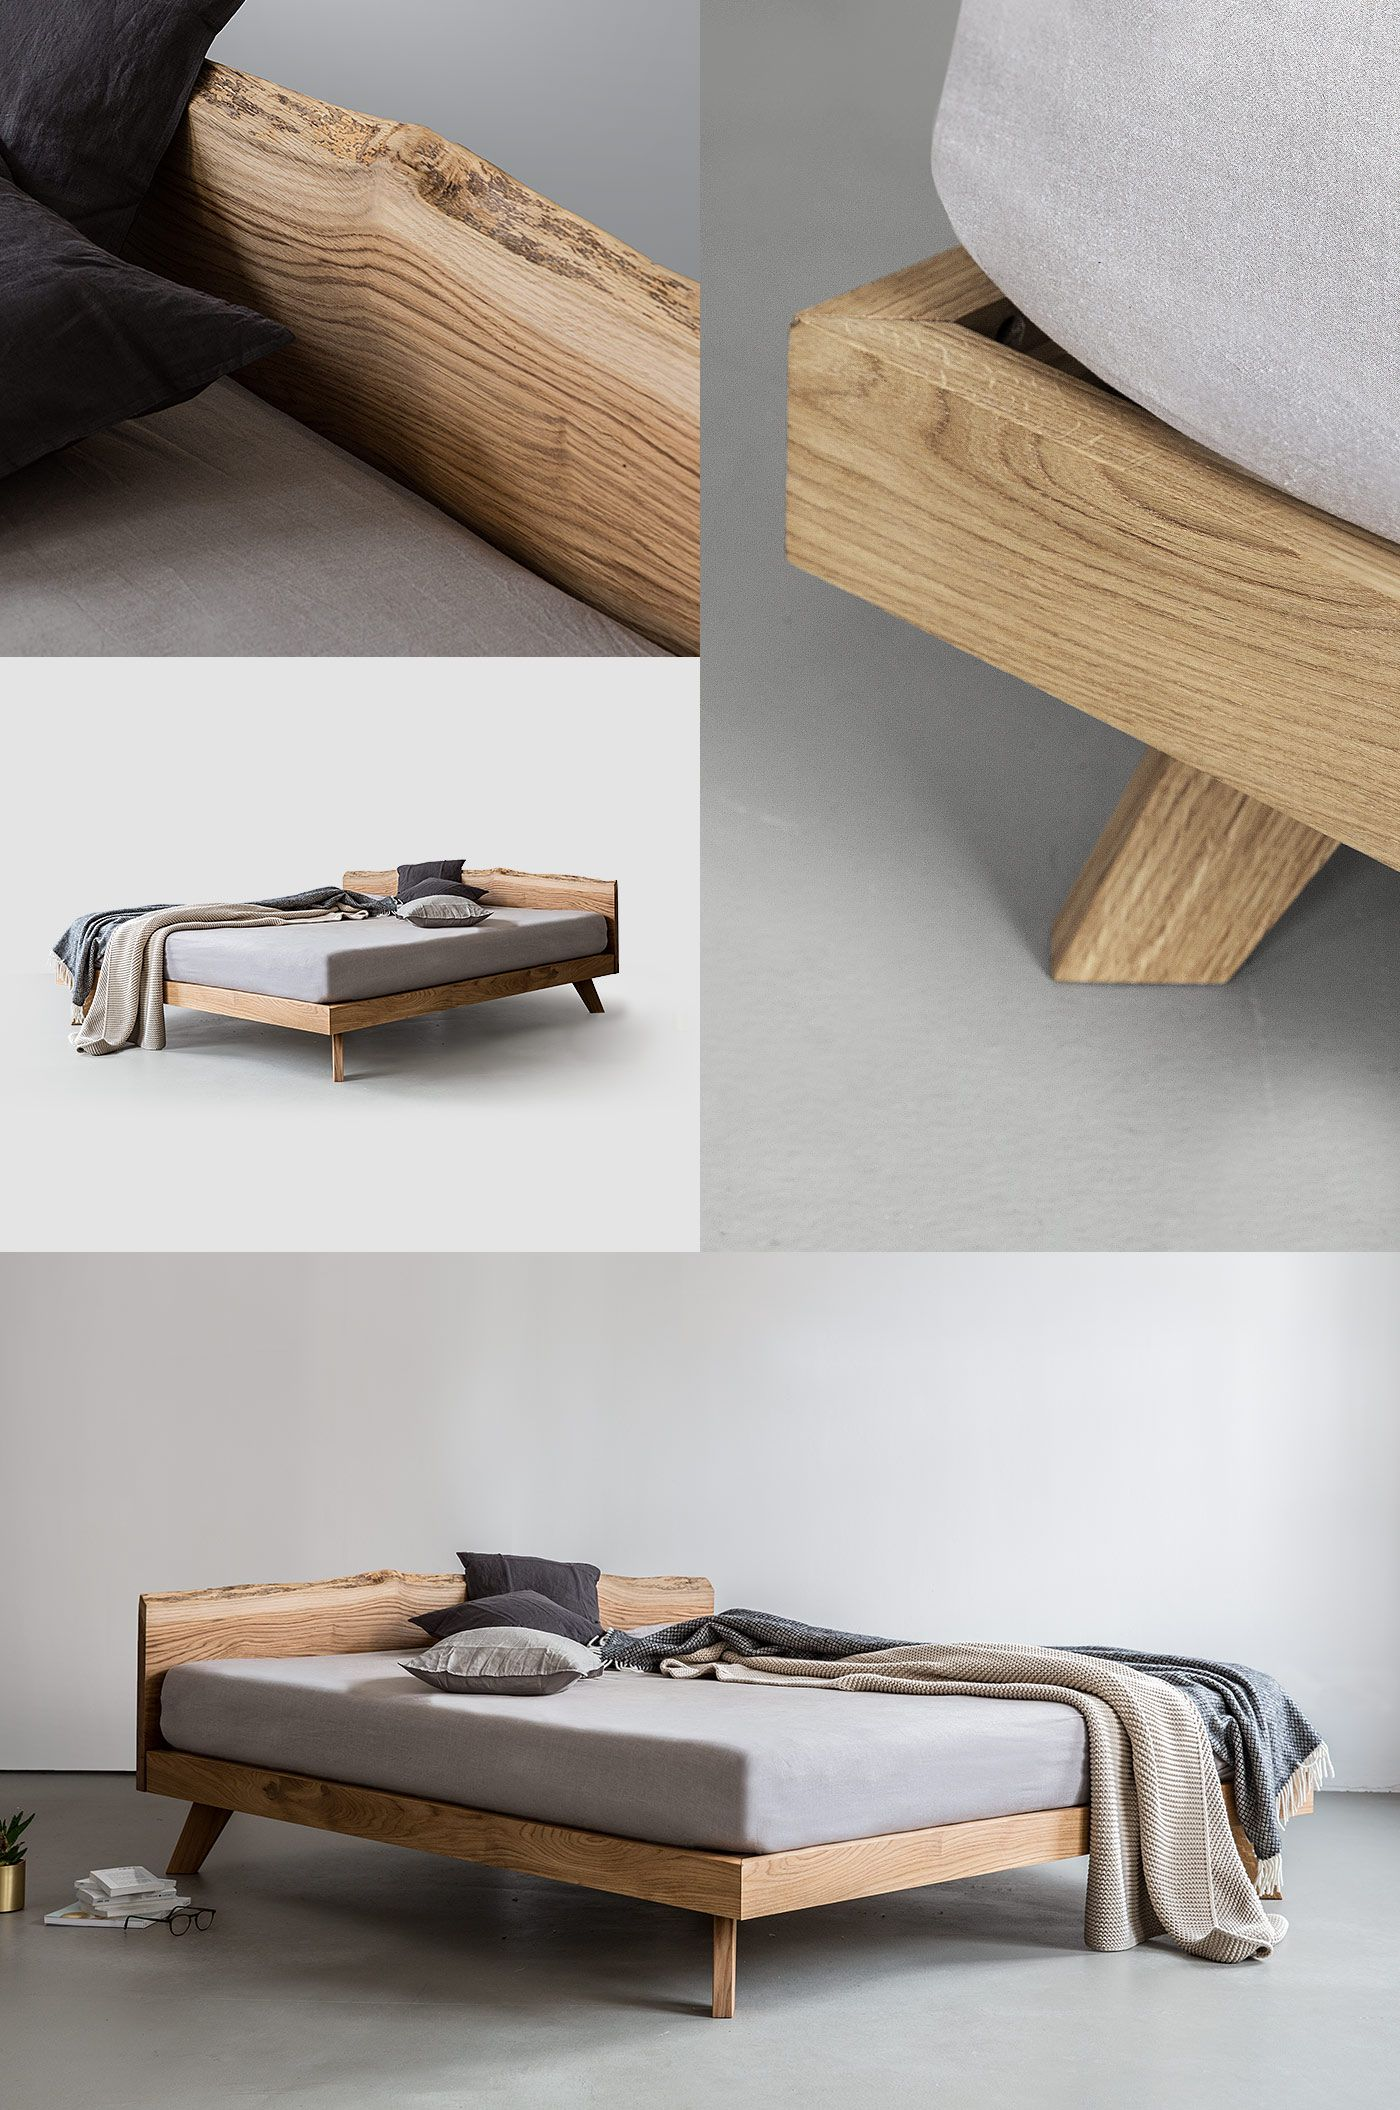 Bett Holz Pinterest Nutsandwoods Oak Bed Home Pinterest Muebles Cama